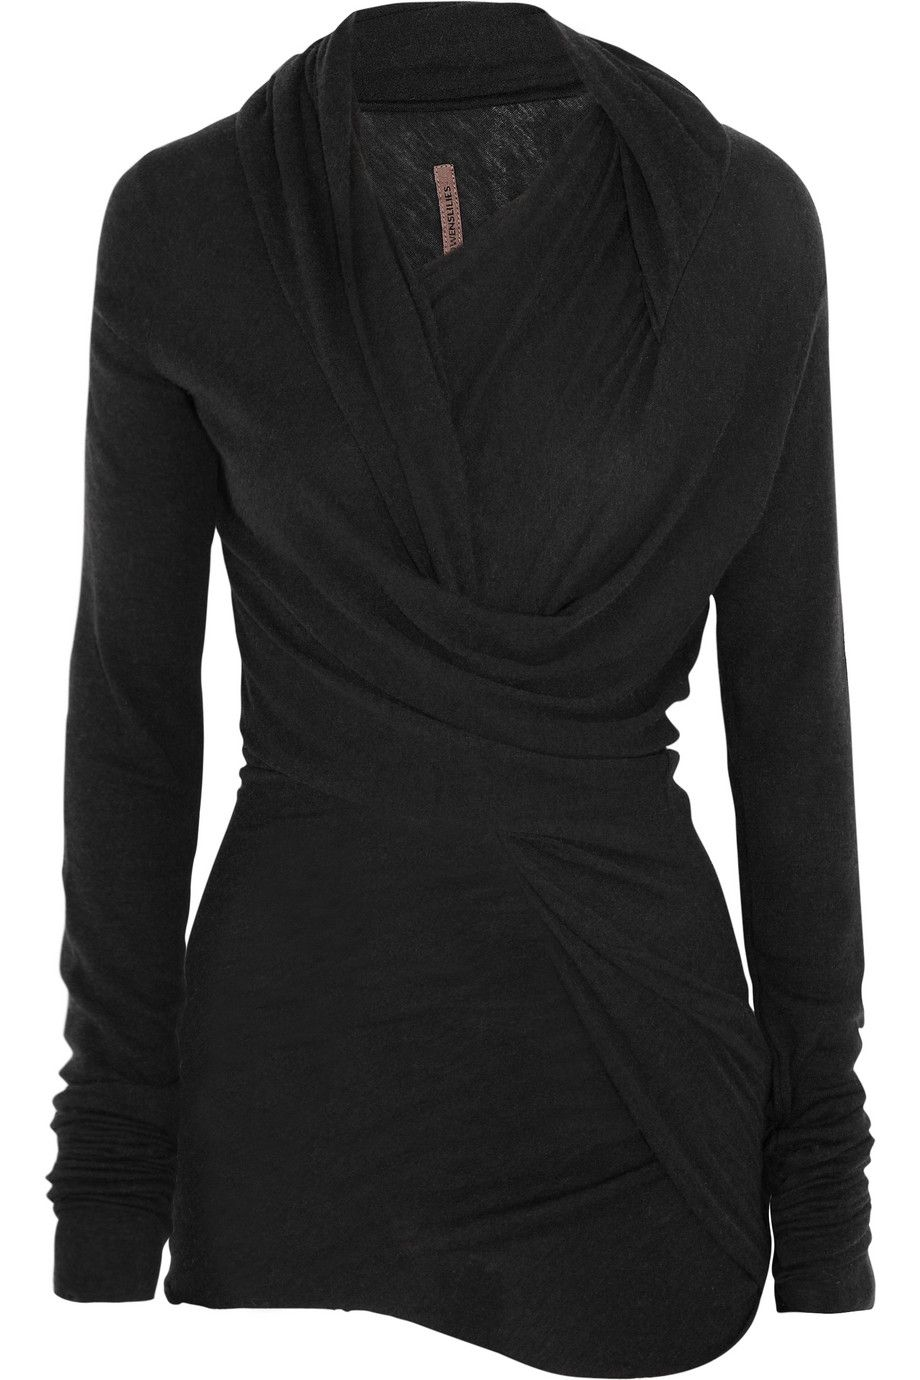 Twist-Front jersey top.  Great with jeans and boots for fall